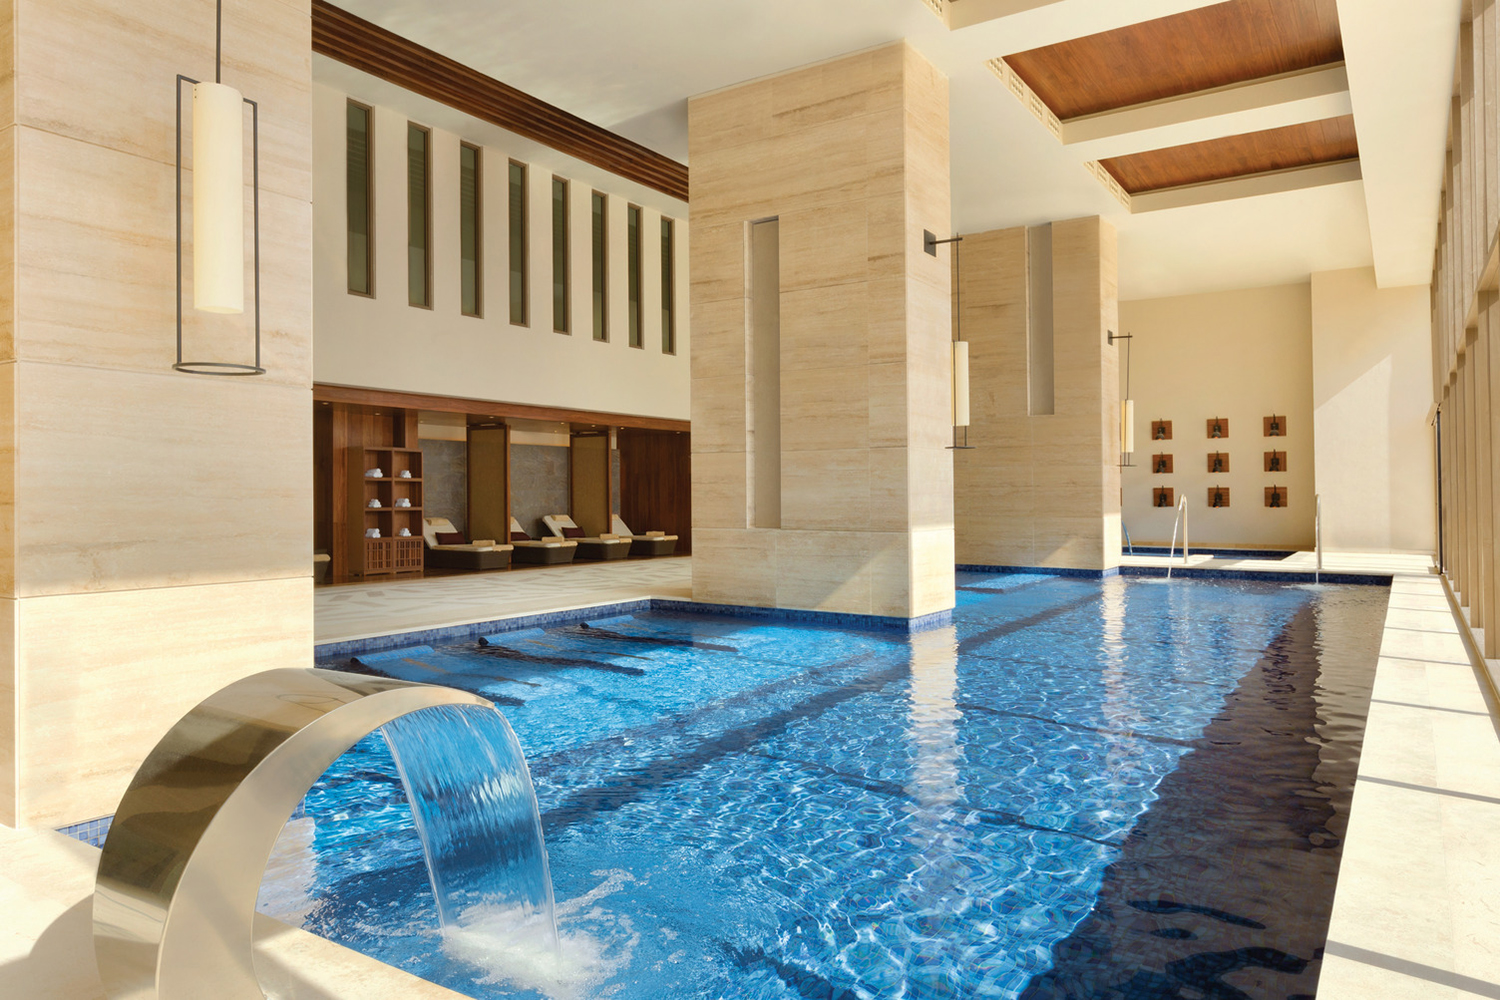 Zen Spa features a dual temperature whirlpool tub, steam room, a sauna, and a cold plunge pool.